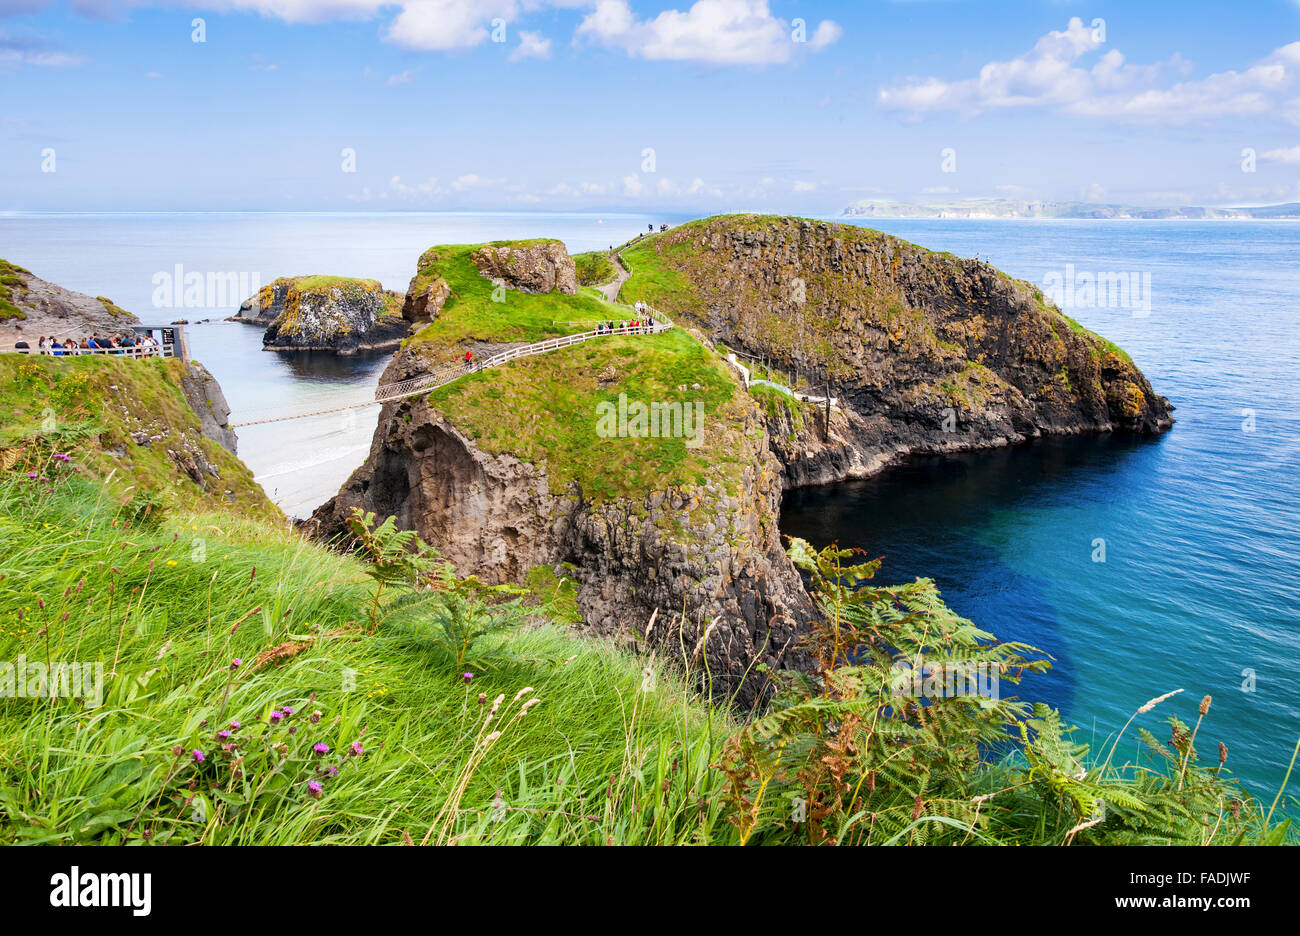 Tourist at the Carrick-a-Rede rope bridge on the Causeway Coast in Antrim County, Northern Ireland - Stock Image